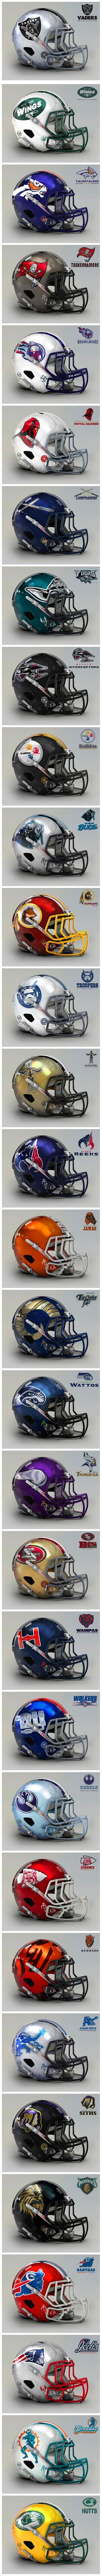 If all 32 NFL teams existed in the Star Wars universe, here is what the helmets…